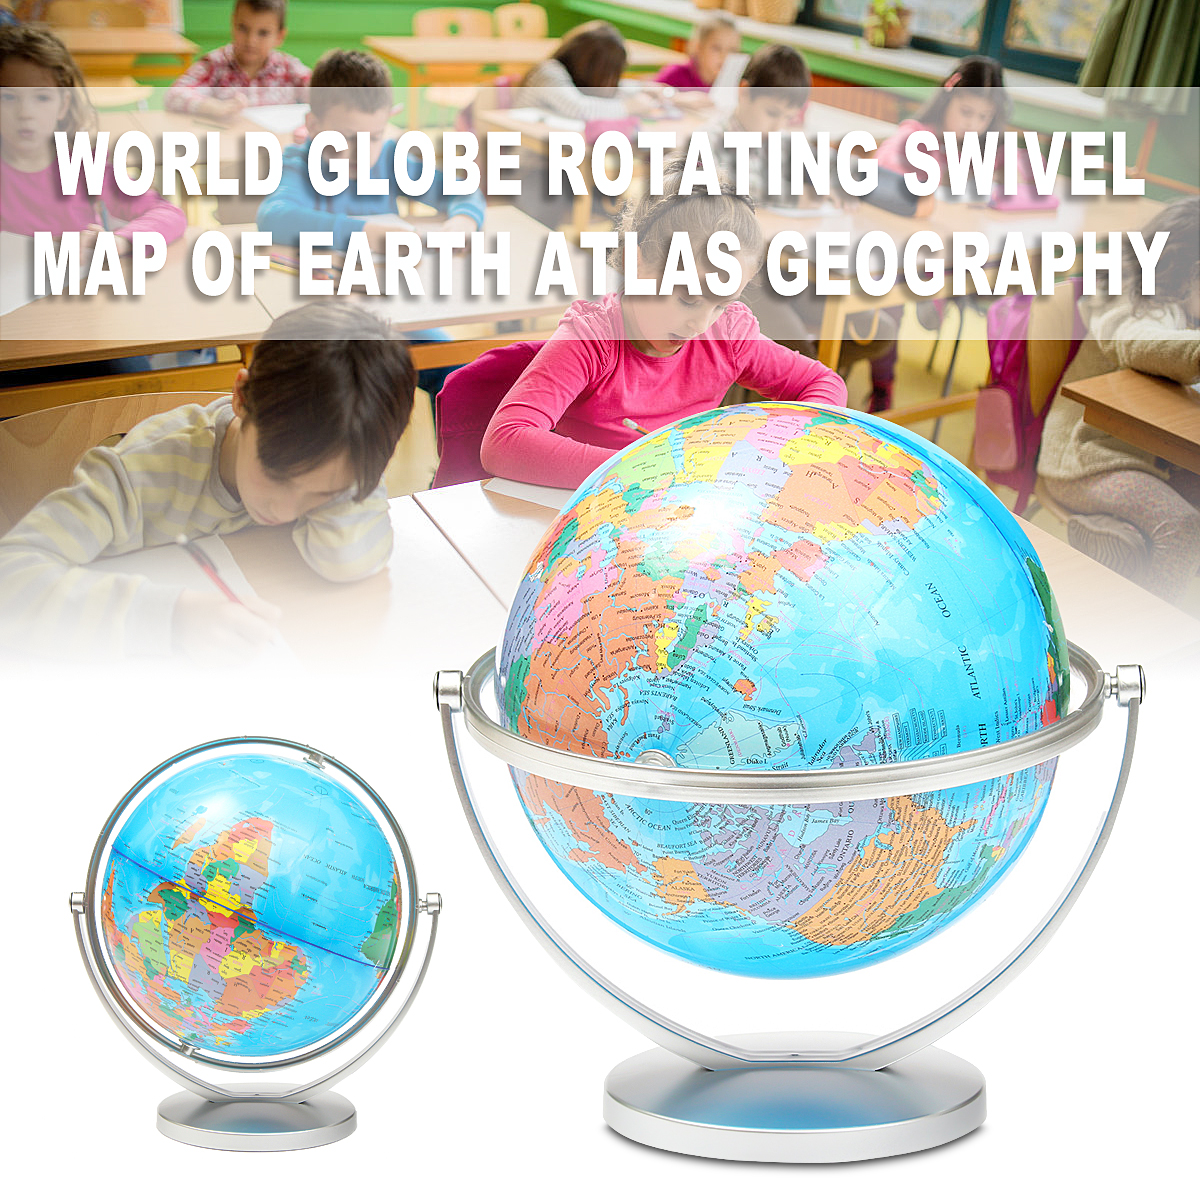 20cm 360 Degree Rotation World Globe Earth Map with Stand Kids Children Geography Educational Toys Home Office Decor Ornaments new led world map world globe rotating swivel map of earth geography globe figurines ornaments birthday gift home office decor